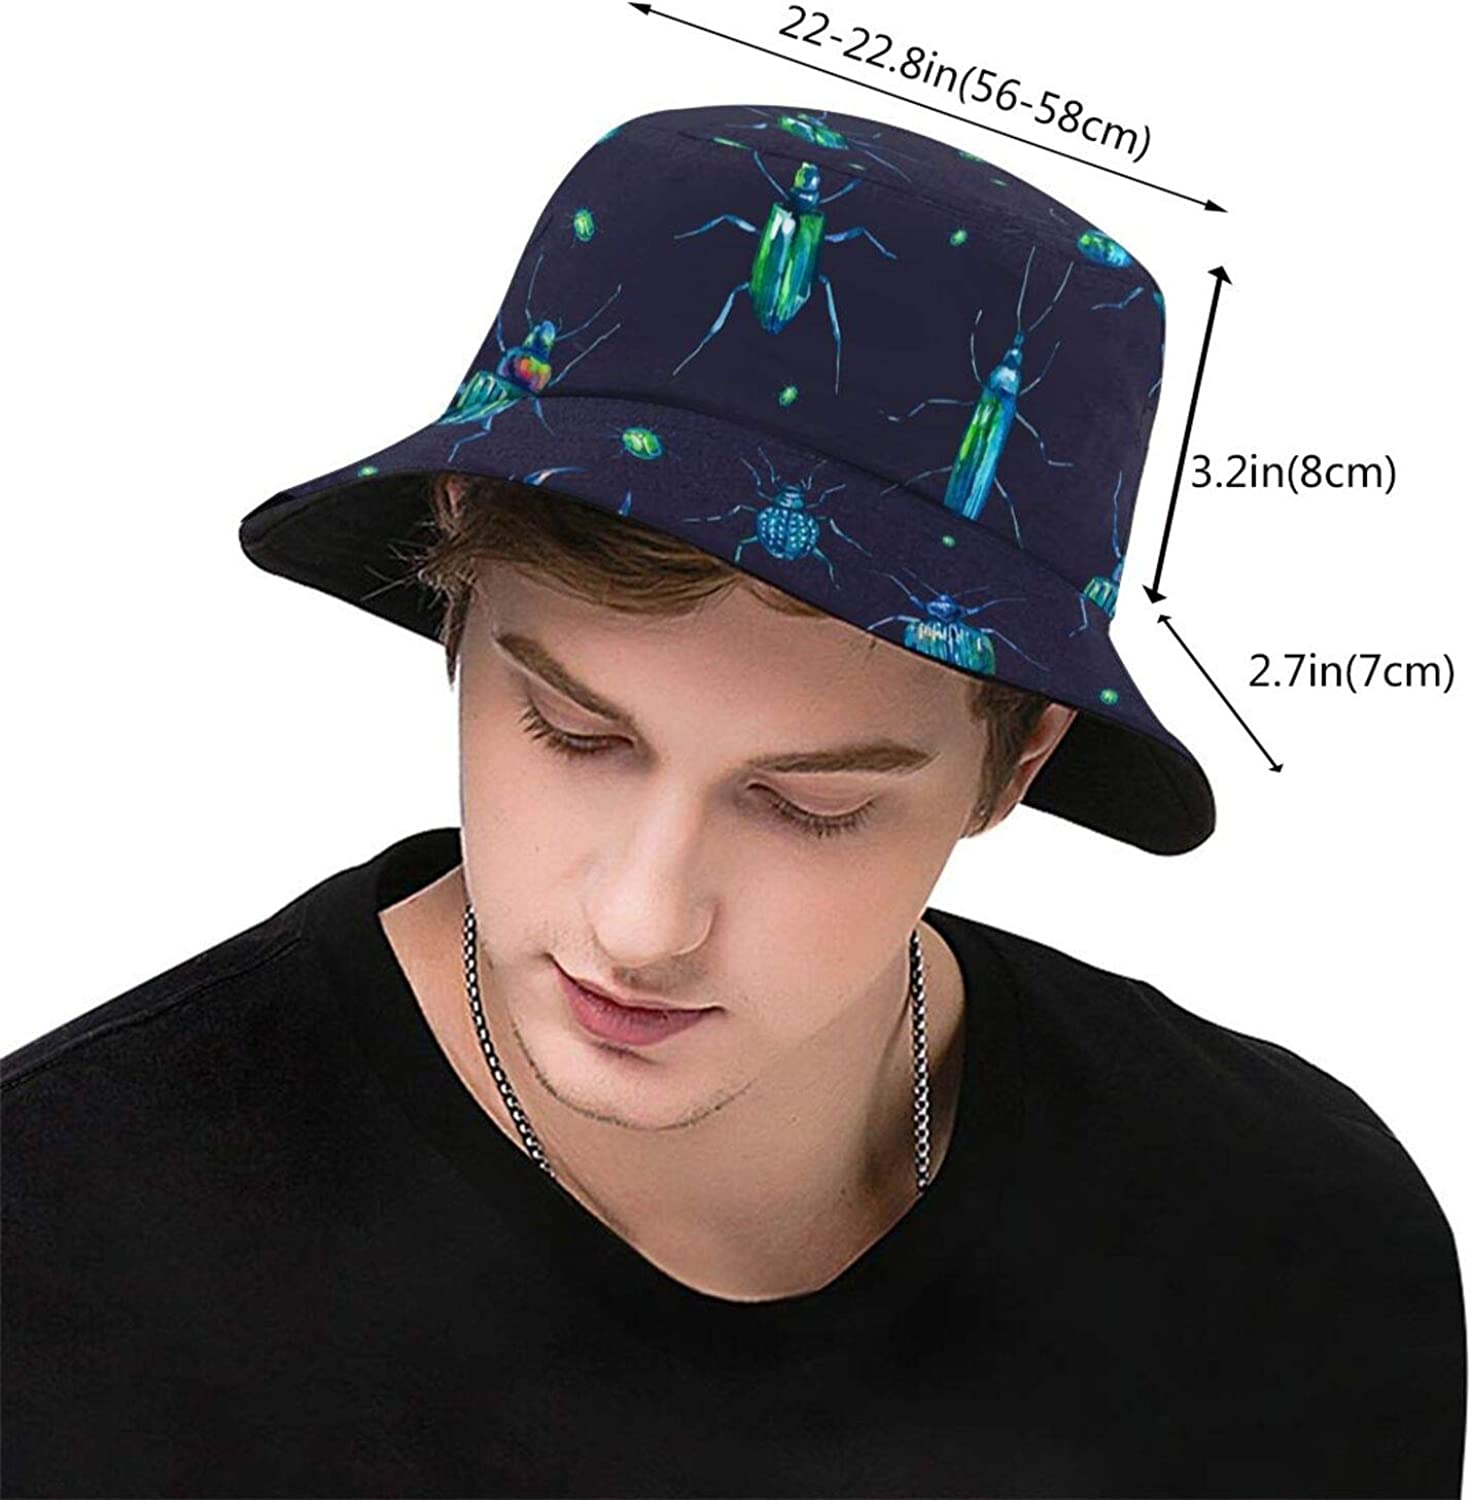 GSUYMMNG Flatbush Zombies Bucket Hat Unisex Sun Hat Printed Fisherman Packable Travel Hat Fashion Outdoor Hat